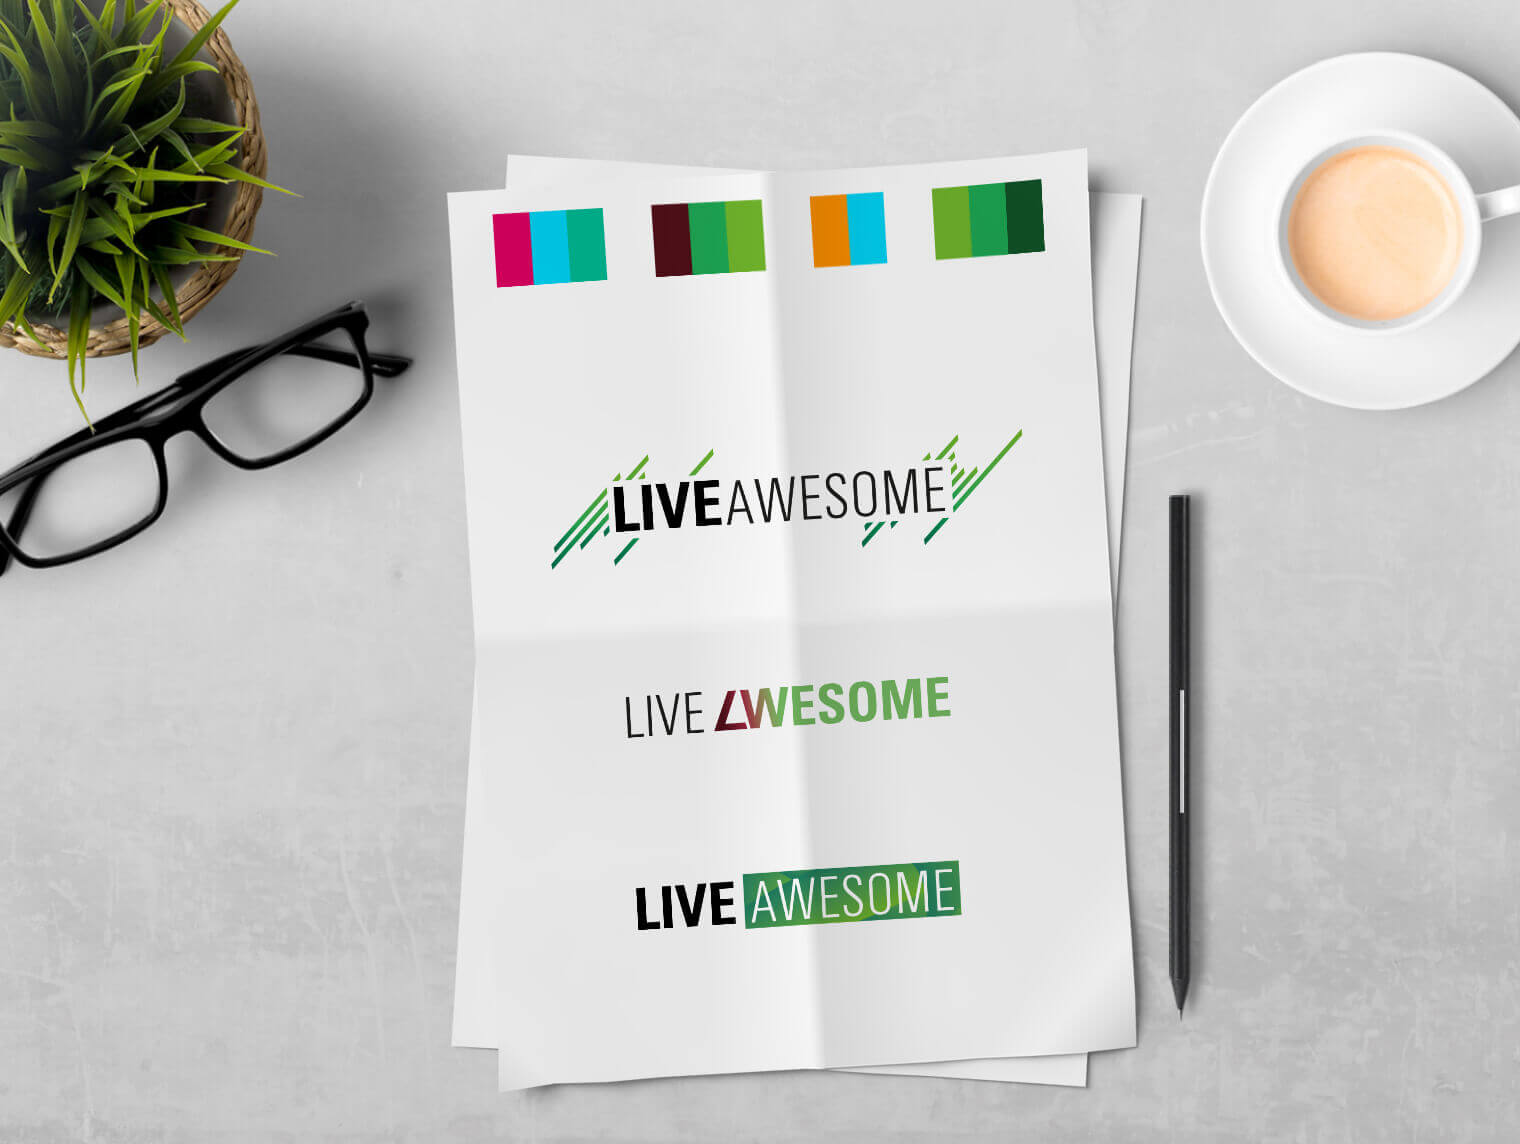 LIVE AWESOME: Logovarianten